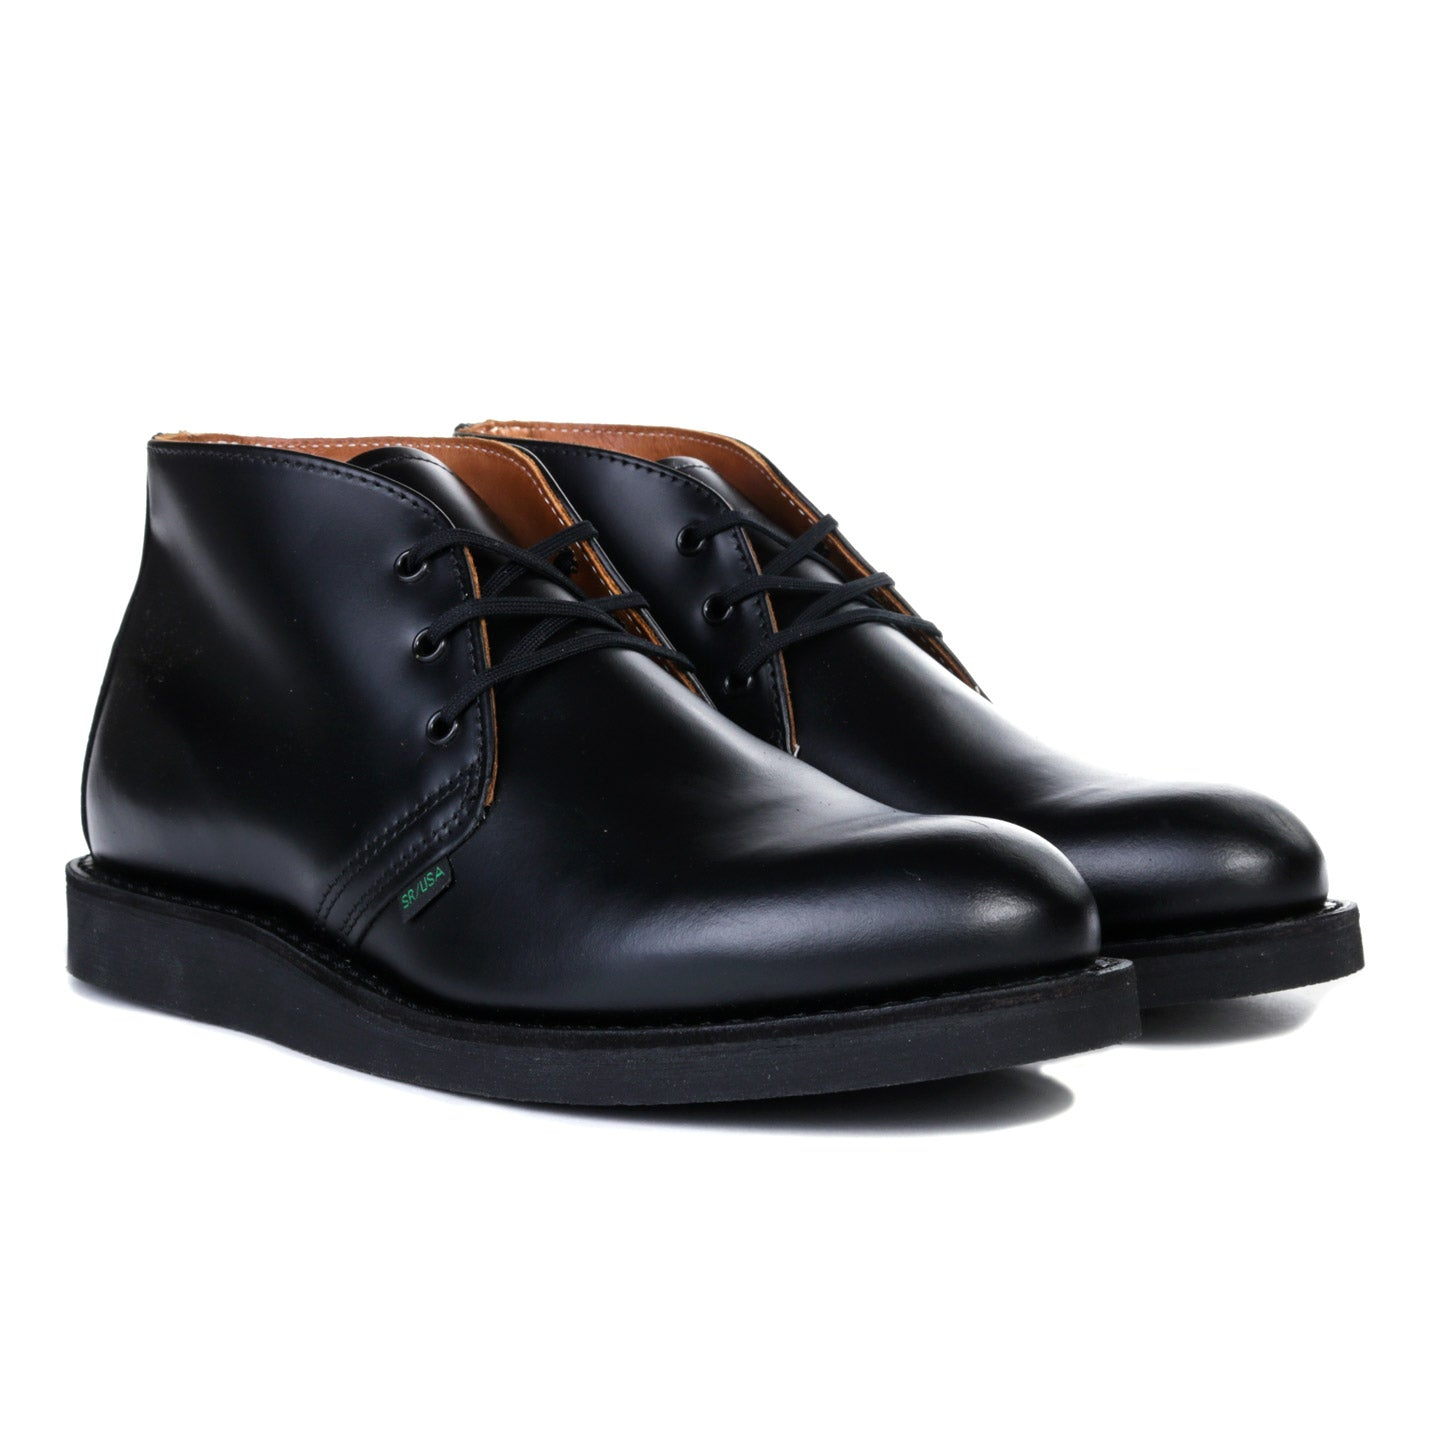 RED WING 9196 POSTMAN CHUKKA BLACK